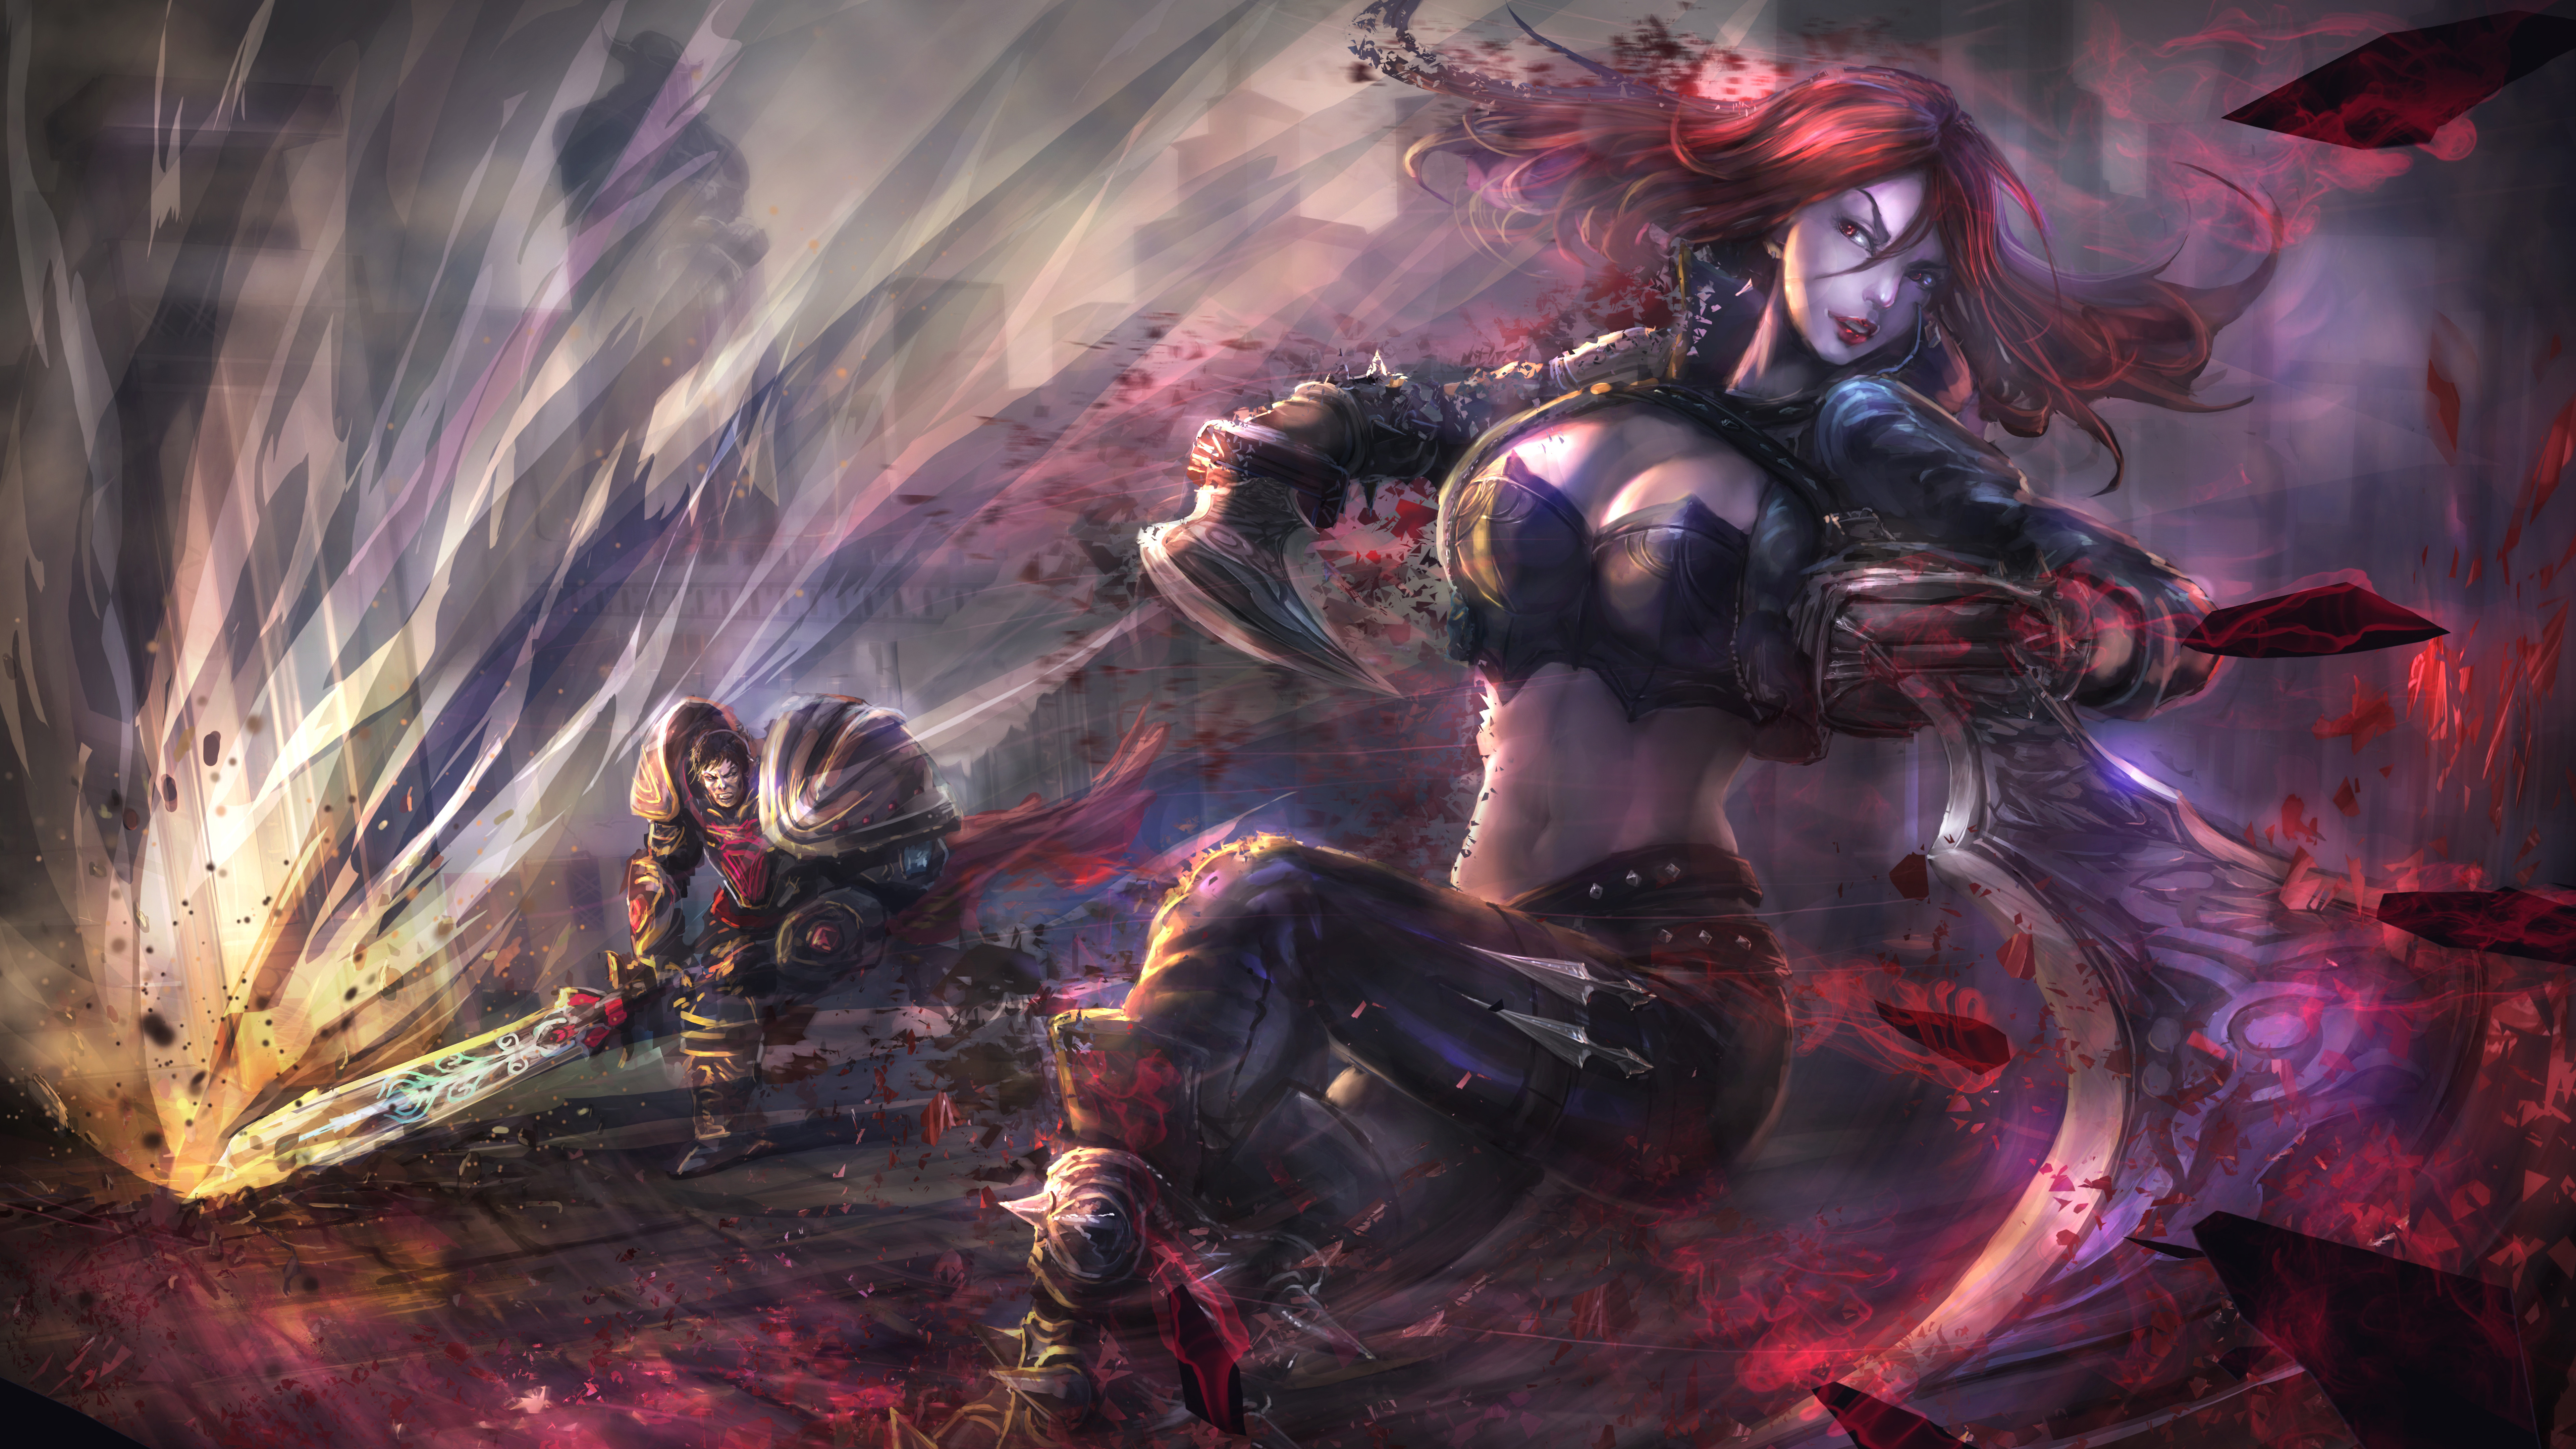 katarina vs garen 1574096170 - Katarina vs. Garen - league of legends, Katarina, Garen